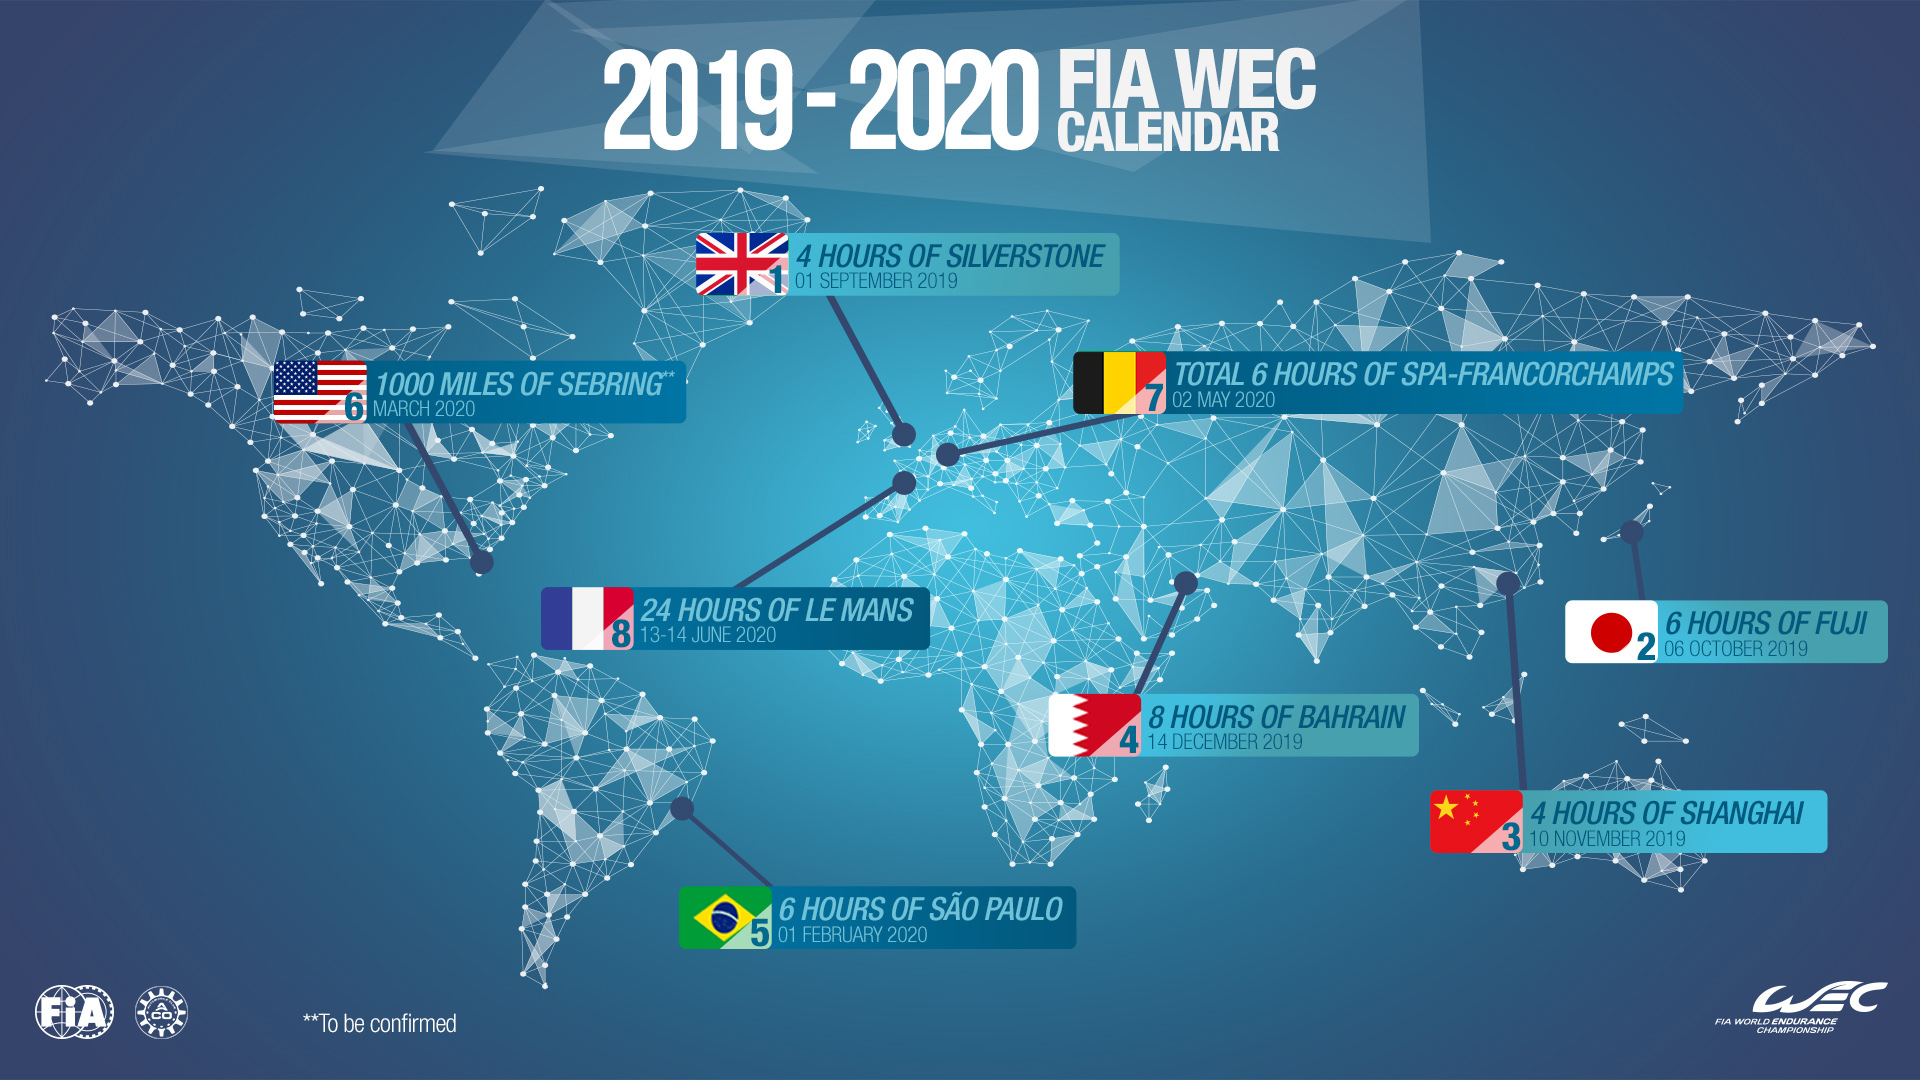 F1 2020 Calendar Dates F1 Schedule 2019: Formula One Grand Prix World Championship Races